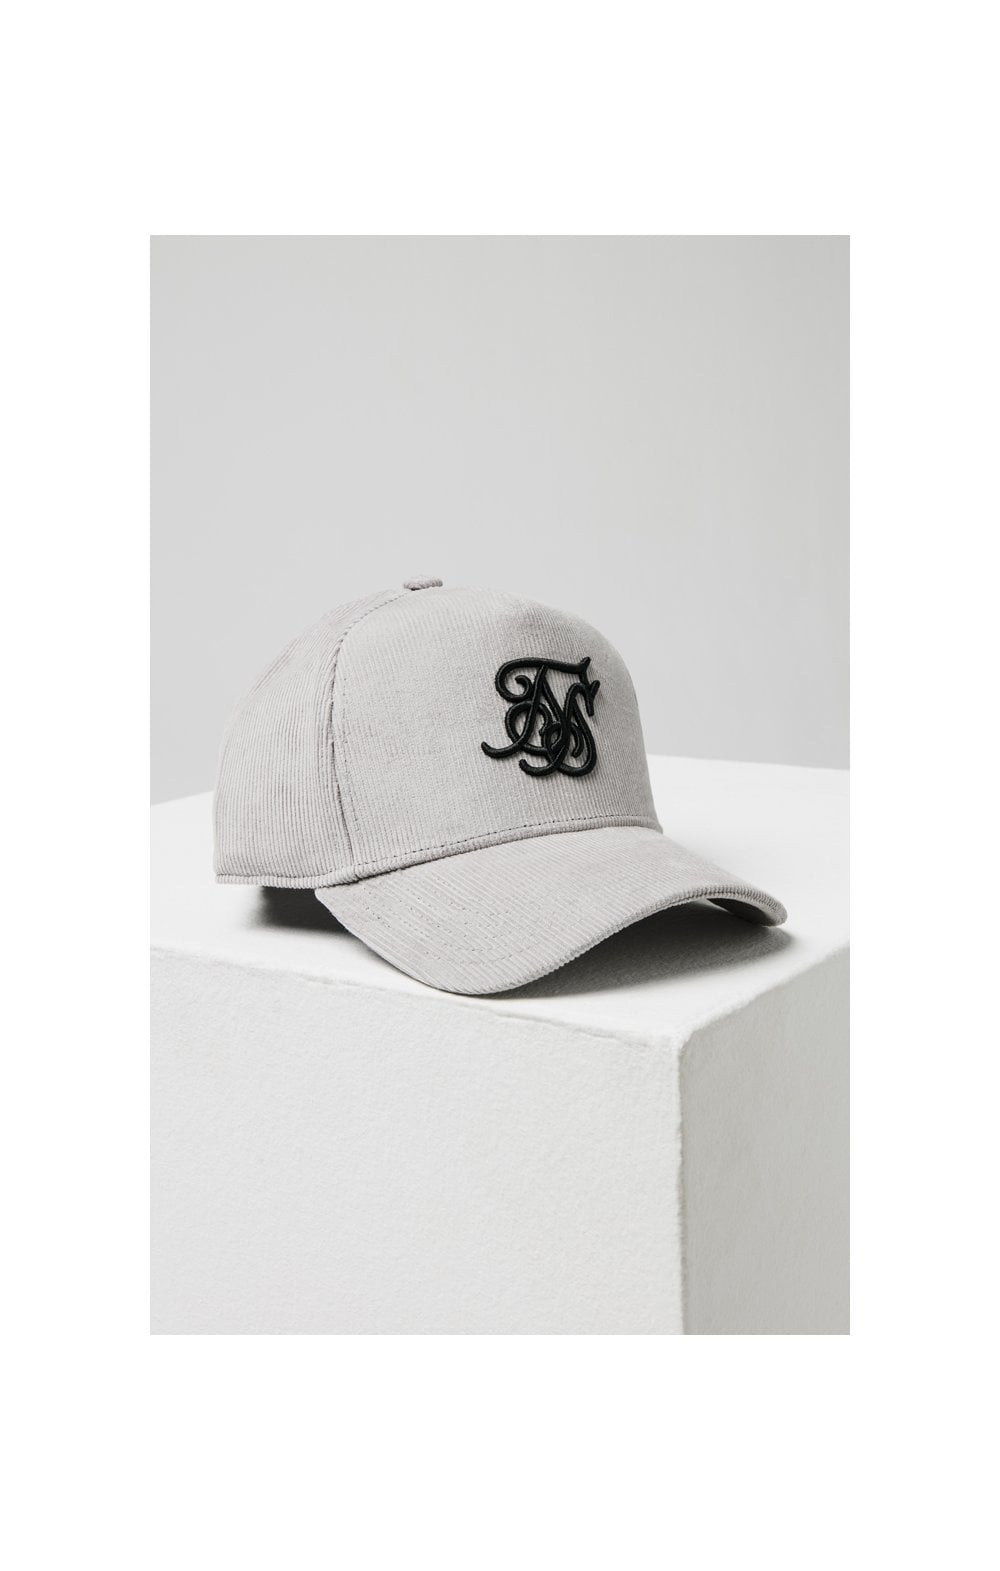 Load image into Gallery viewer, SikSilk Corduroy Full Trucker - Light Grey (1)